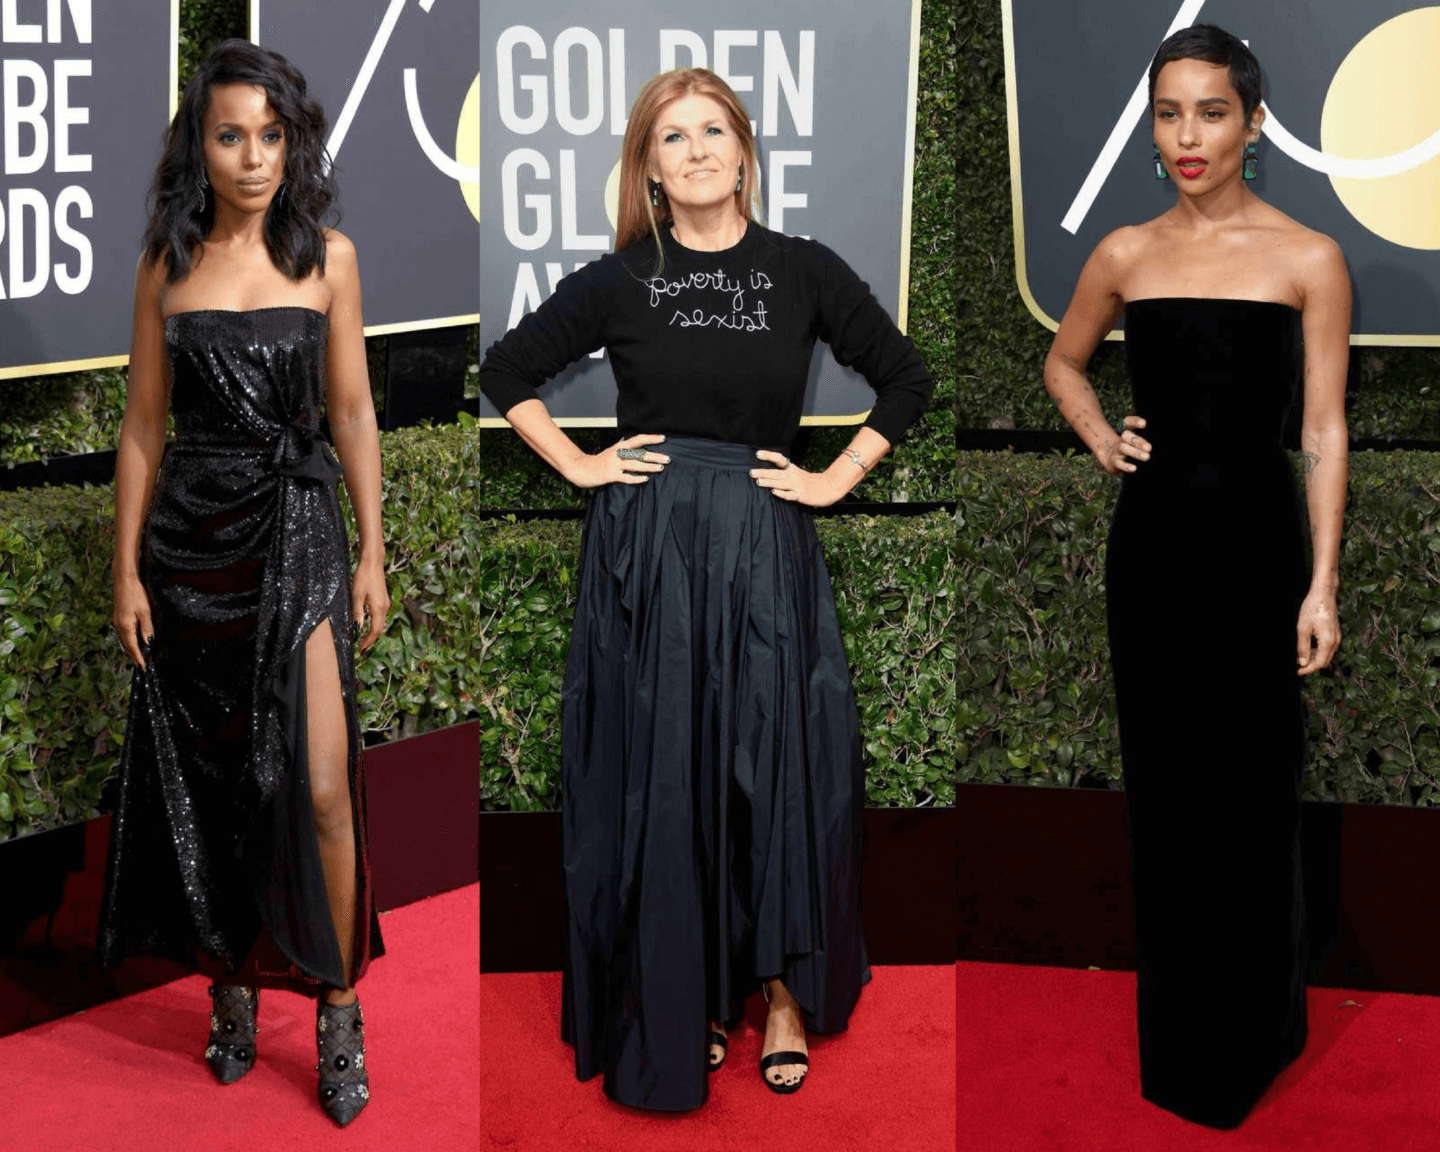 Hollywood Goes Black On The Golden Globes 2018 Red Carpet